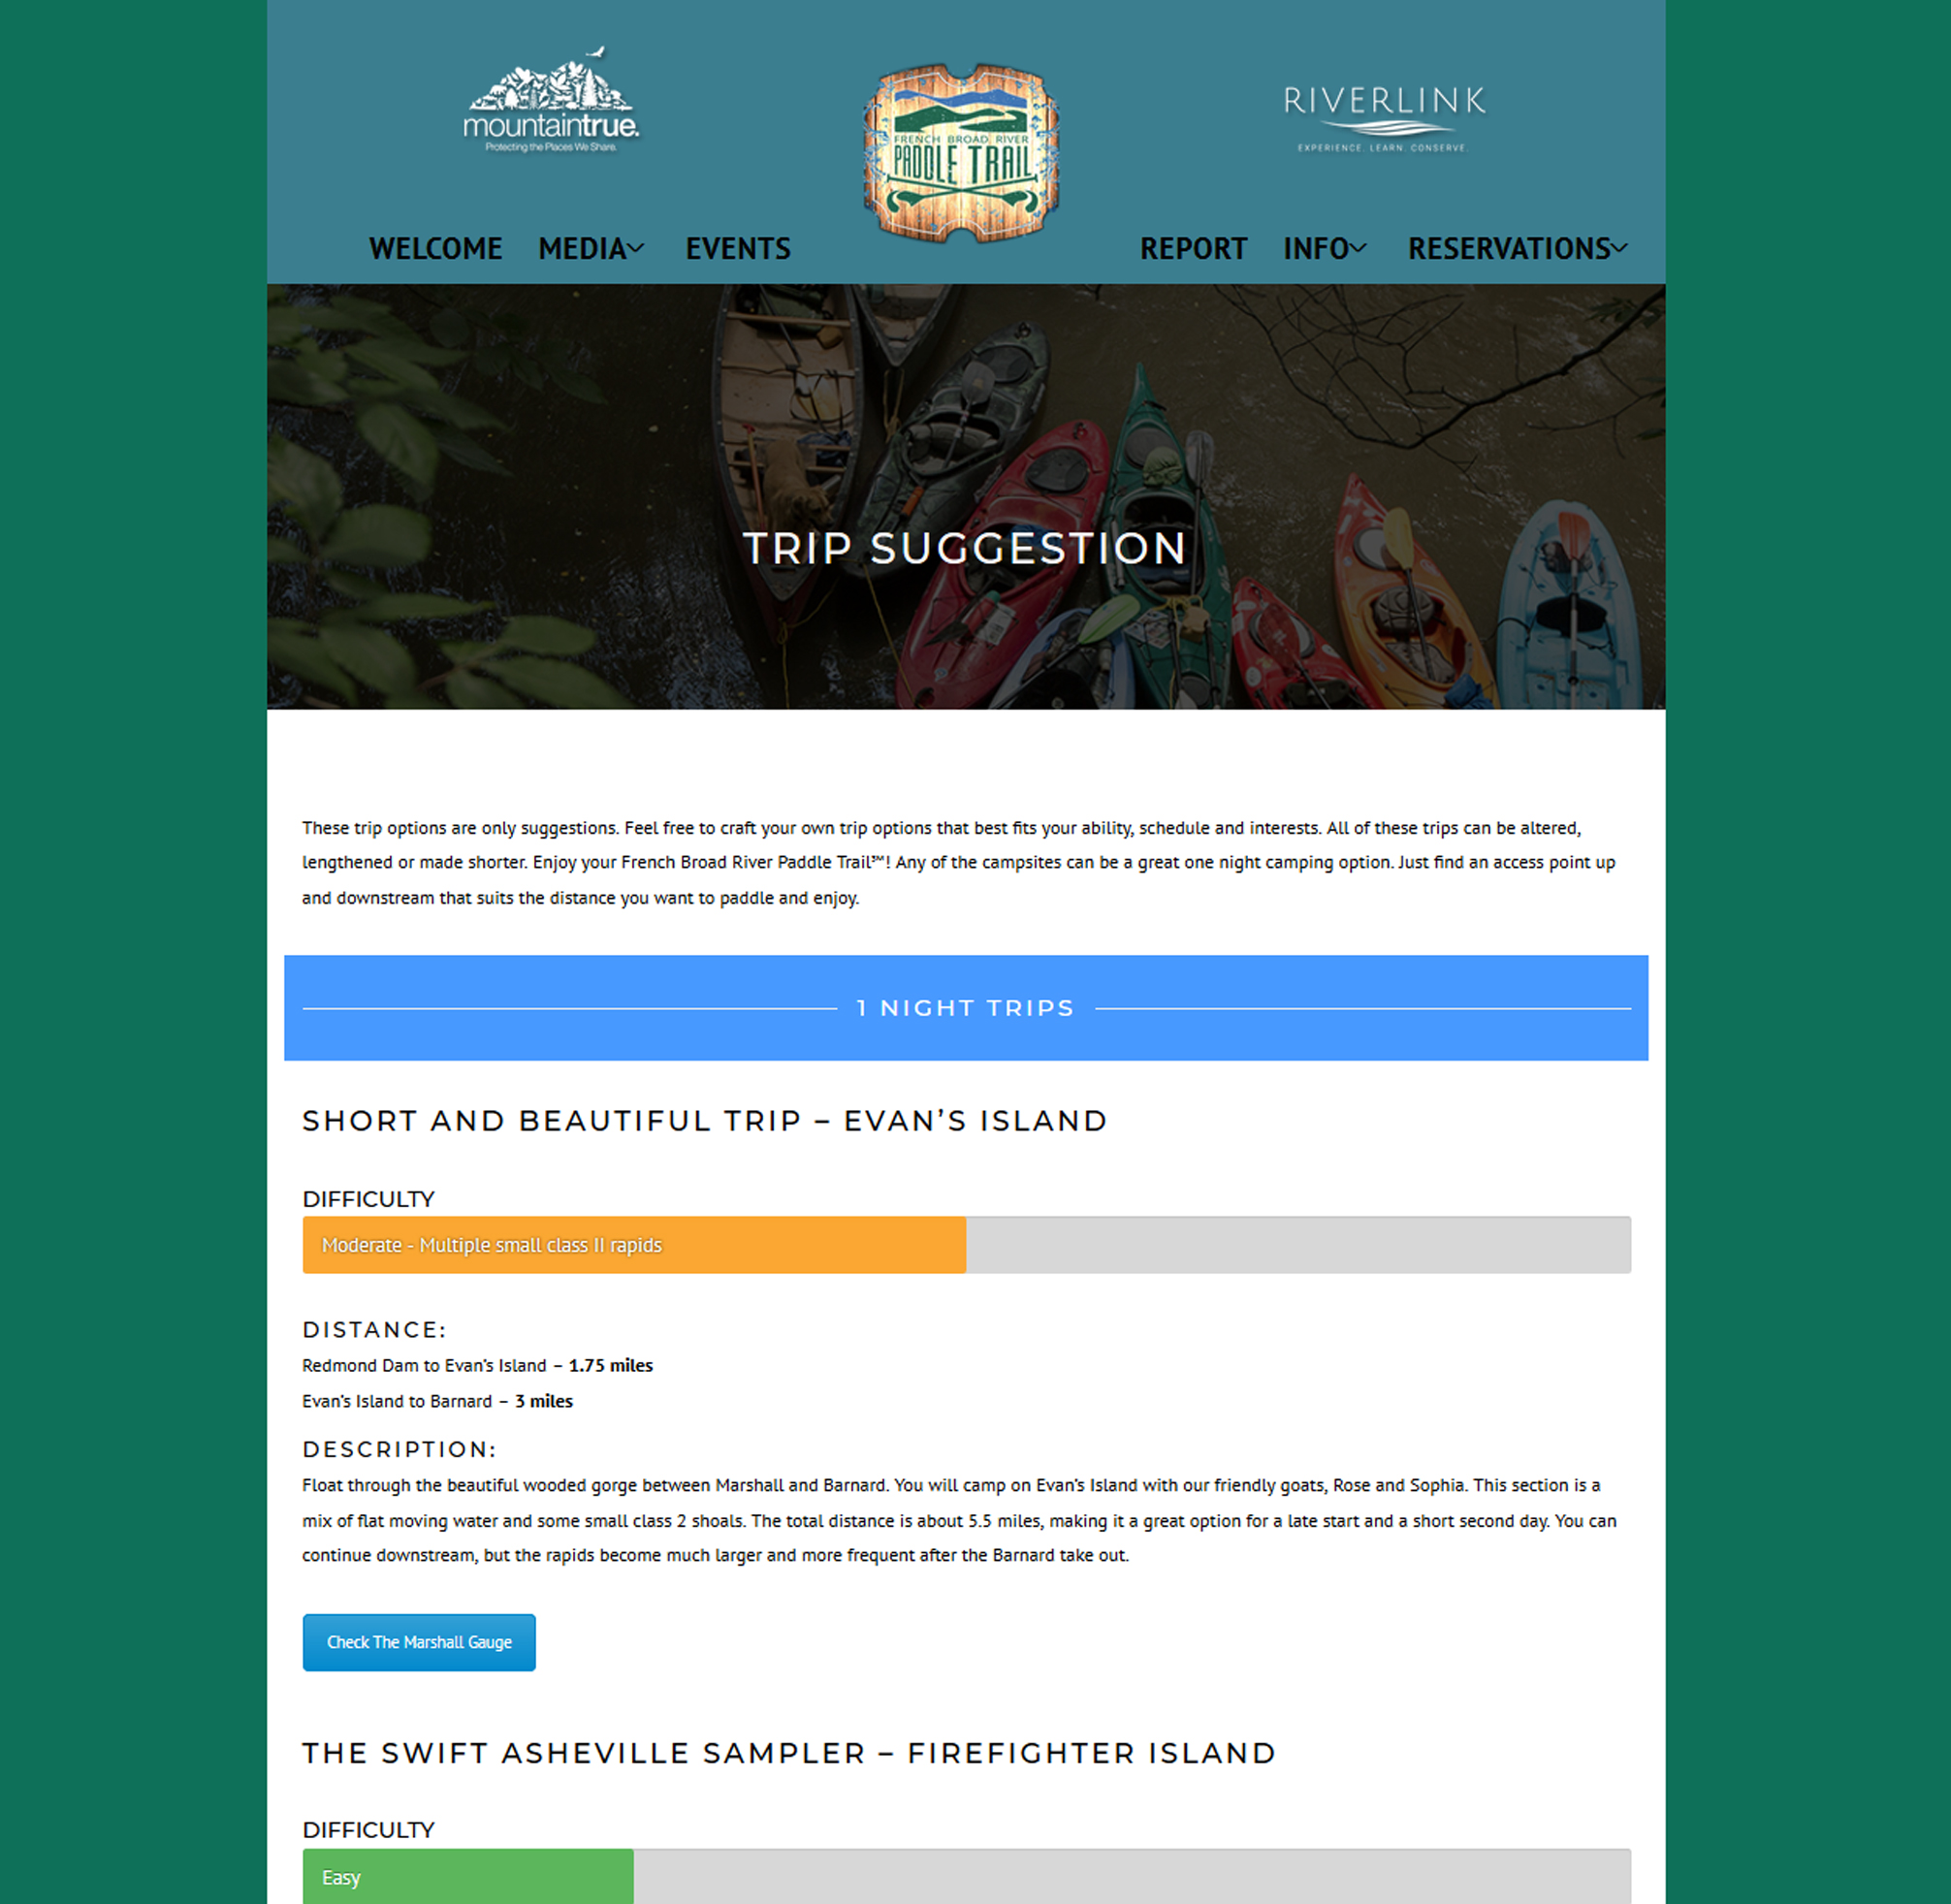 French Broad Paddle Trail Website - Eyecon Imaging